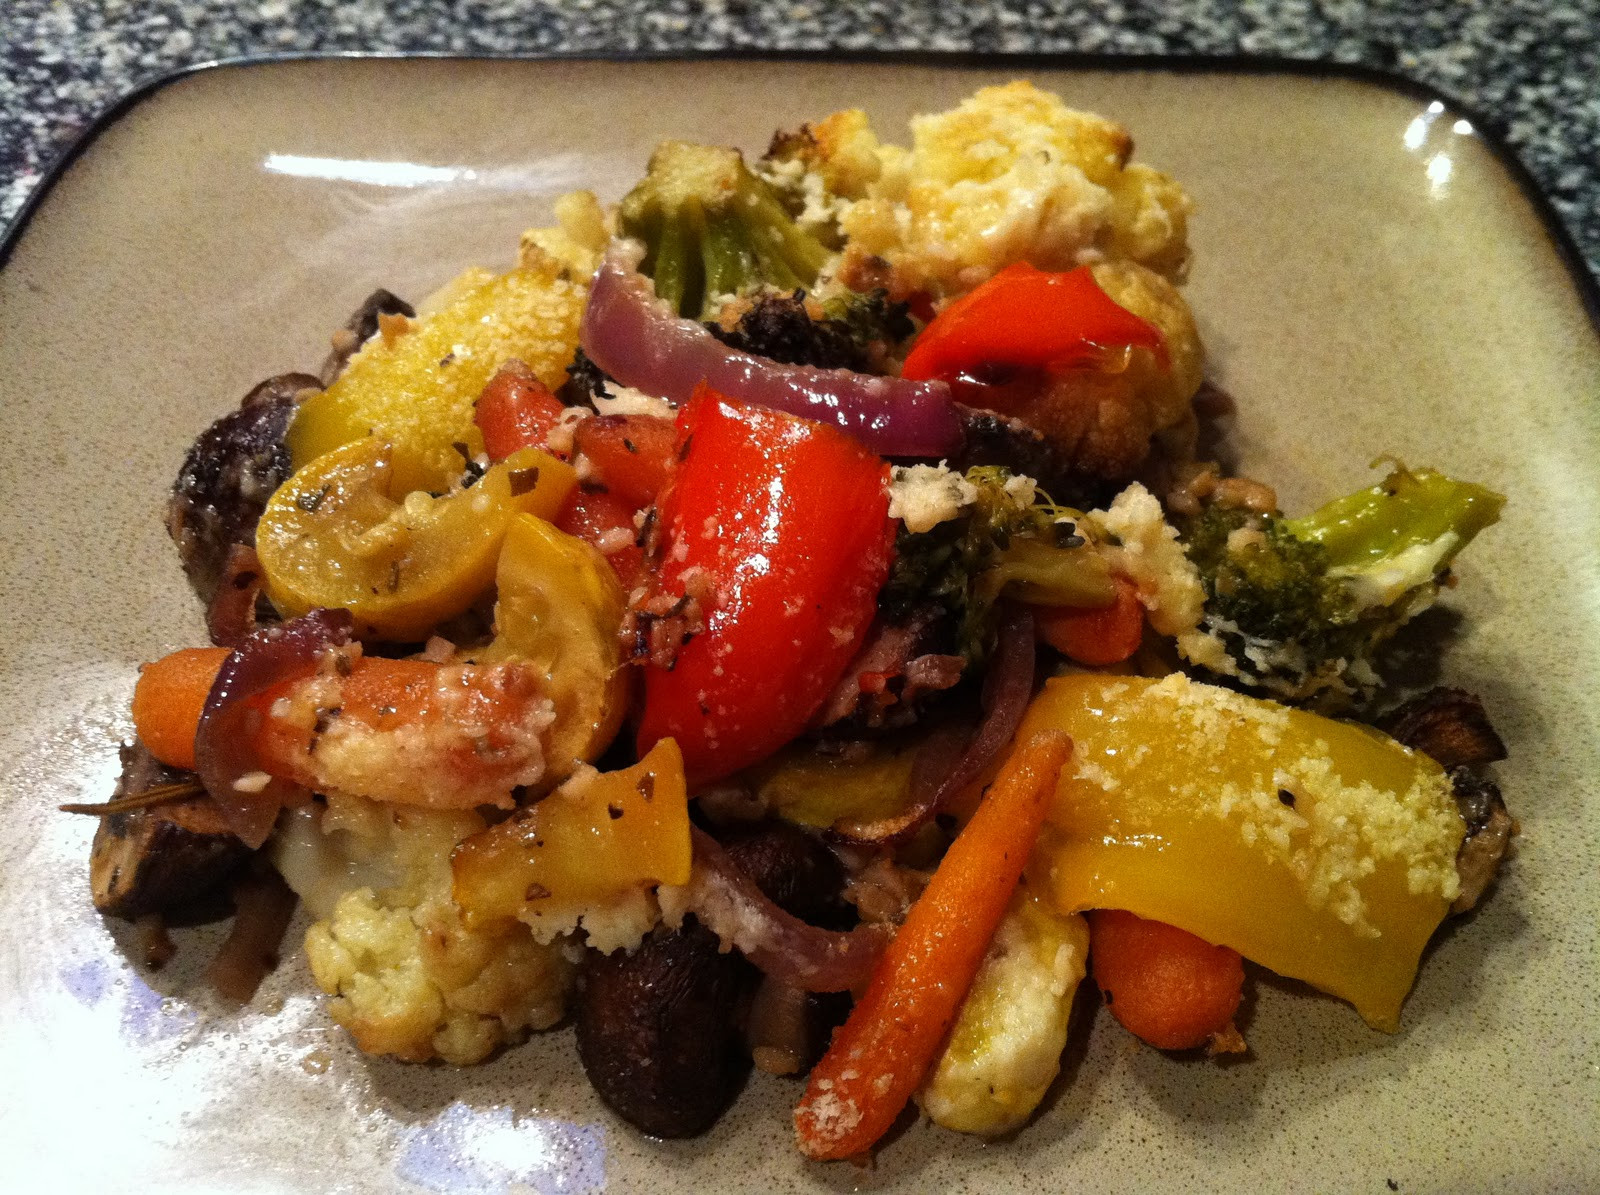 Roasted Vegetables In Oven  Garlic Rosemary Oven Roasted Ve ables with Parmesan